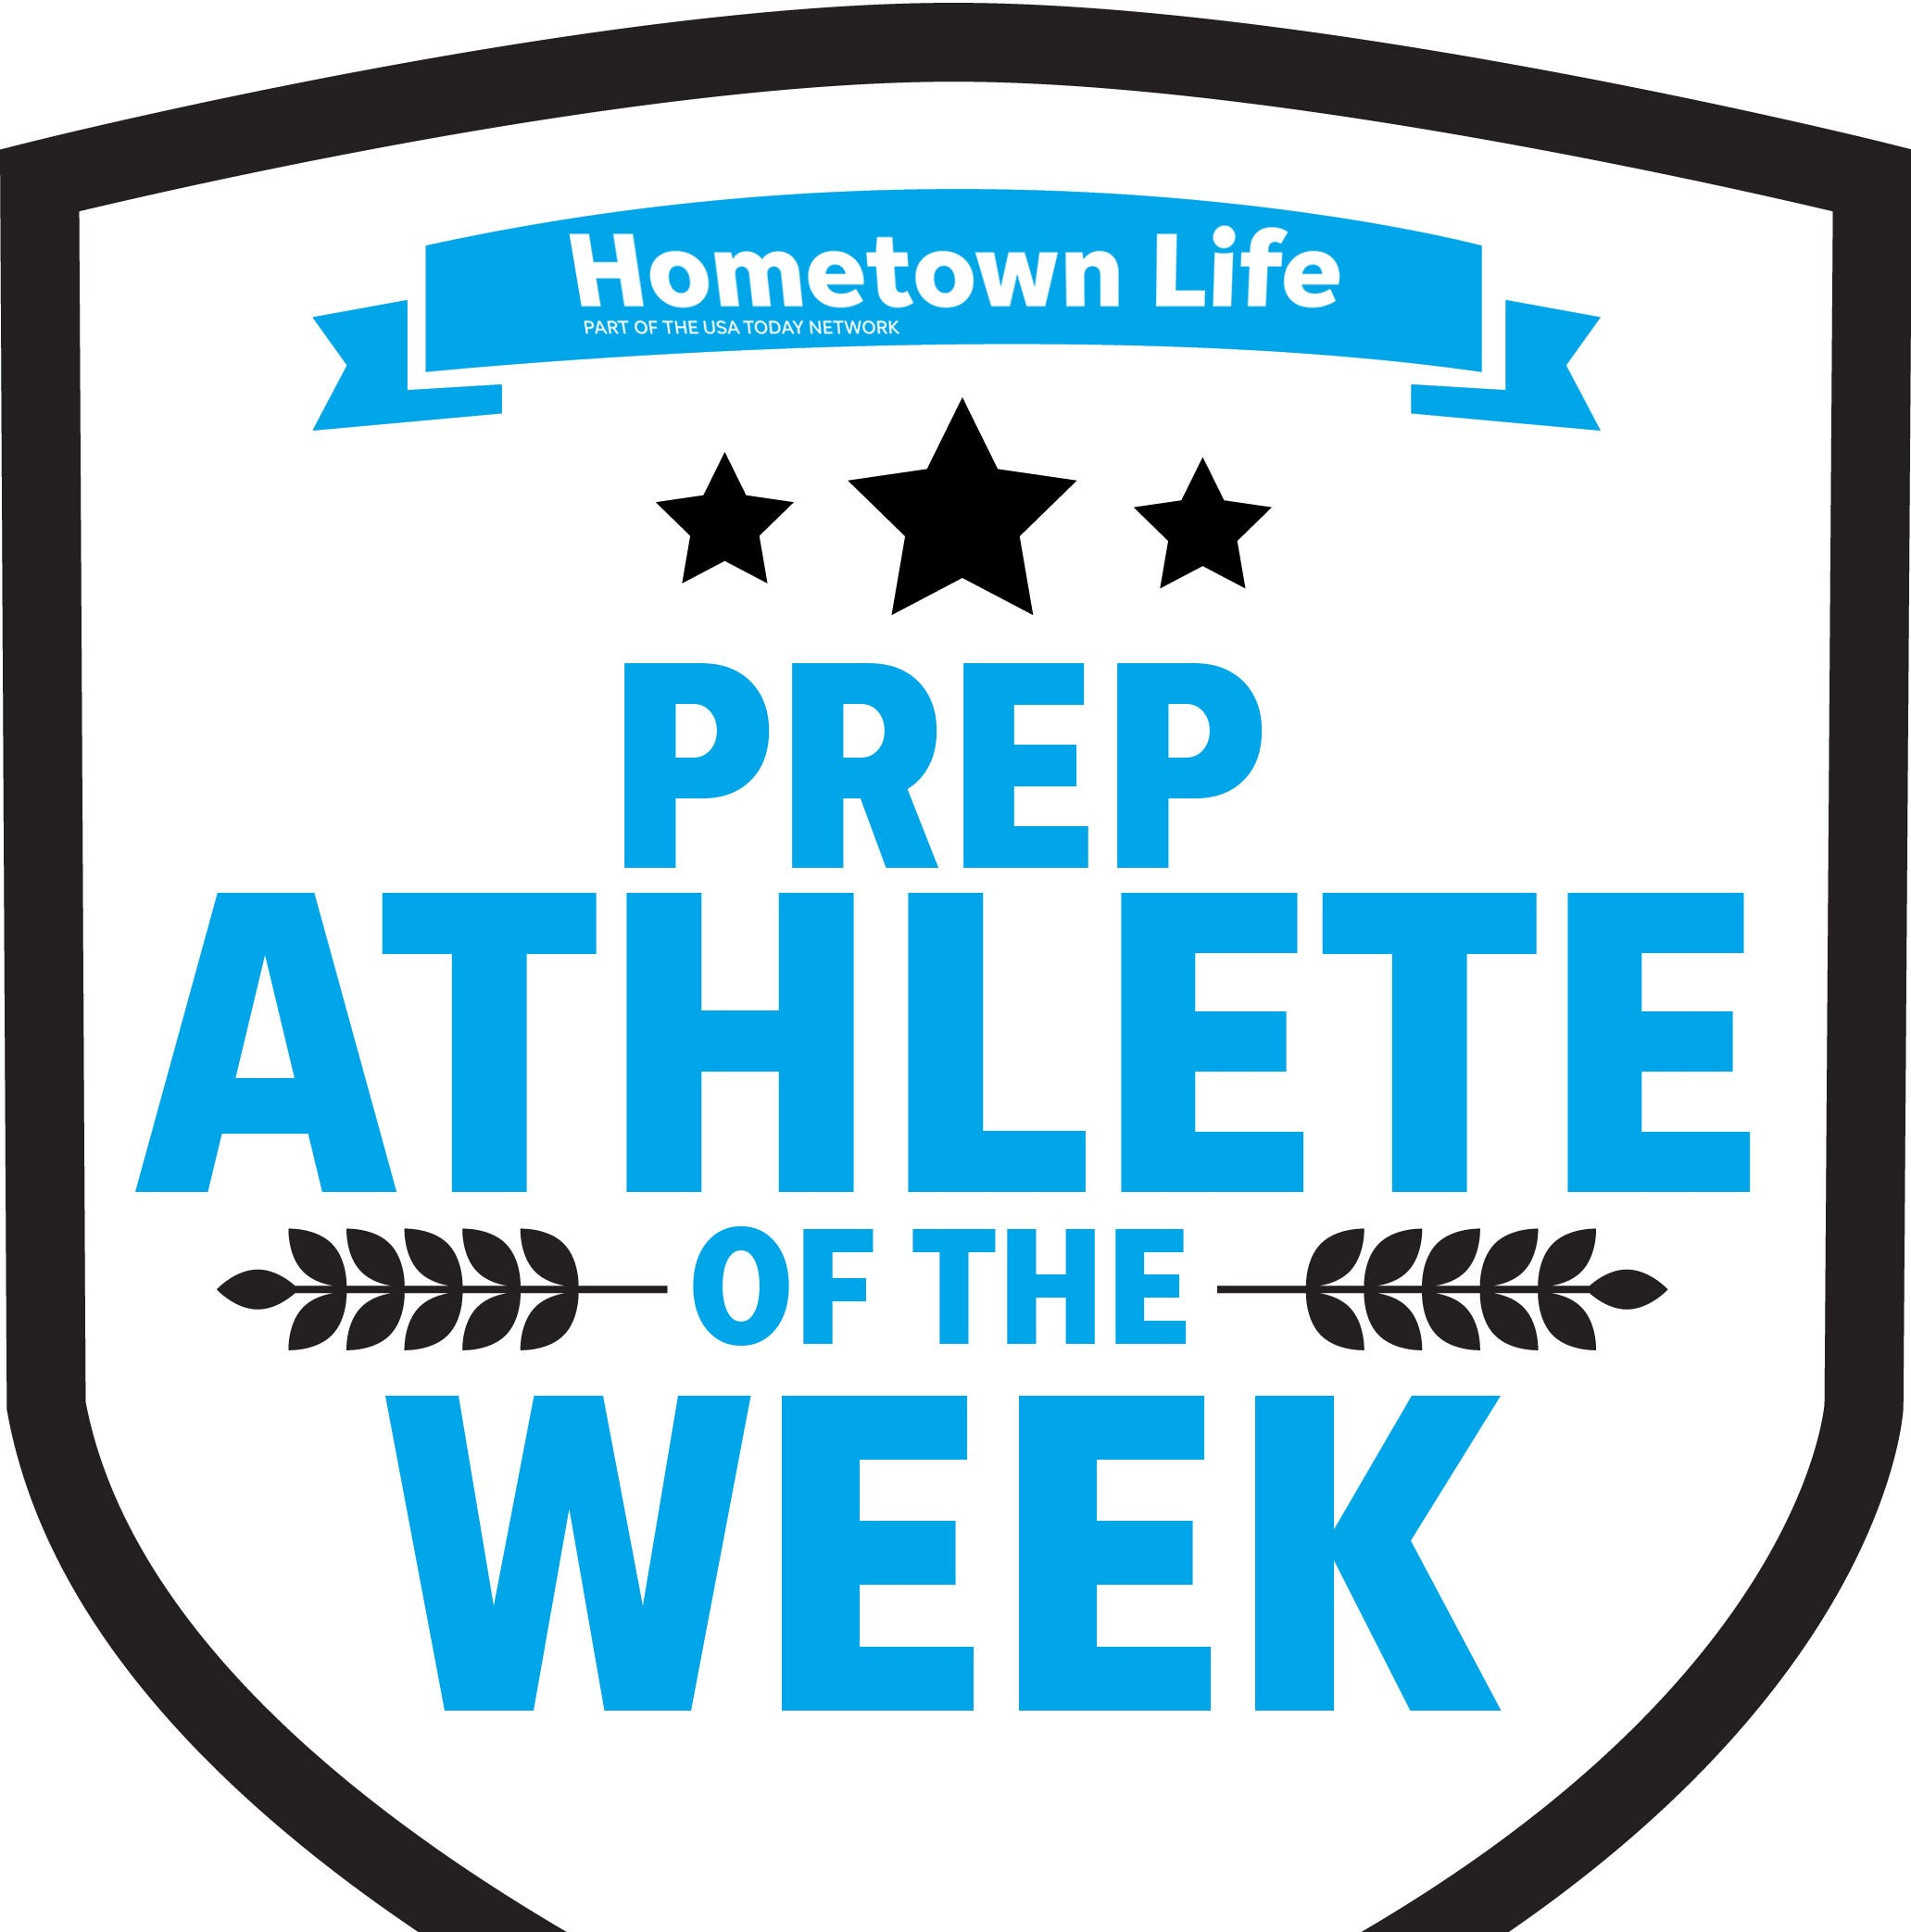 Cast your votes for Hometown Life Prep Athlete of the Week